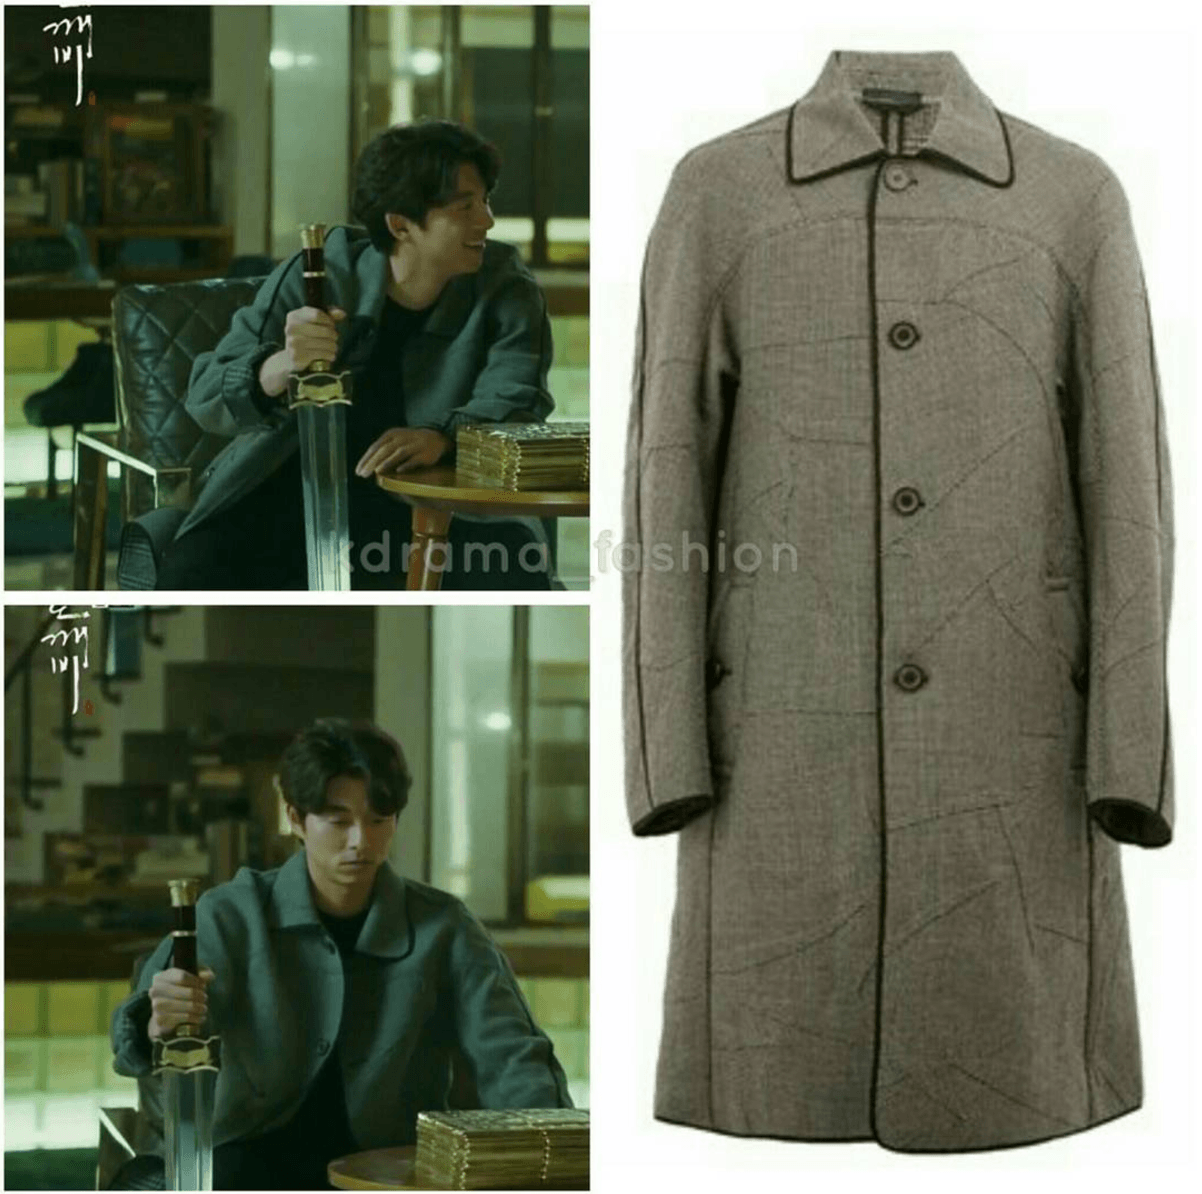 lanvin-stitched-panel-coat